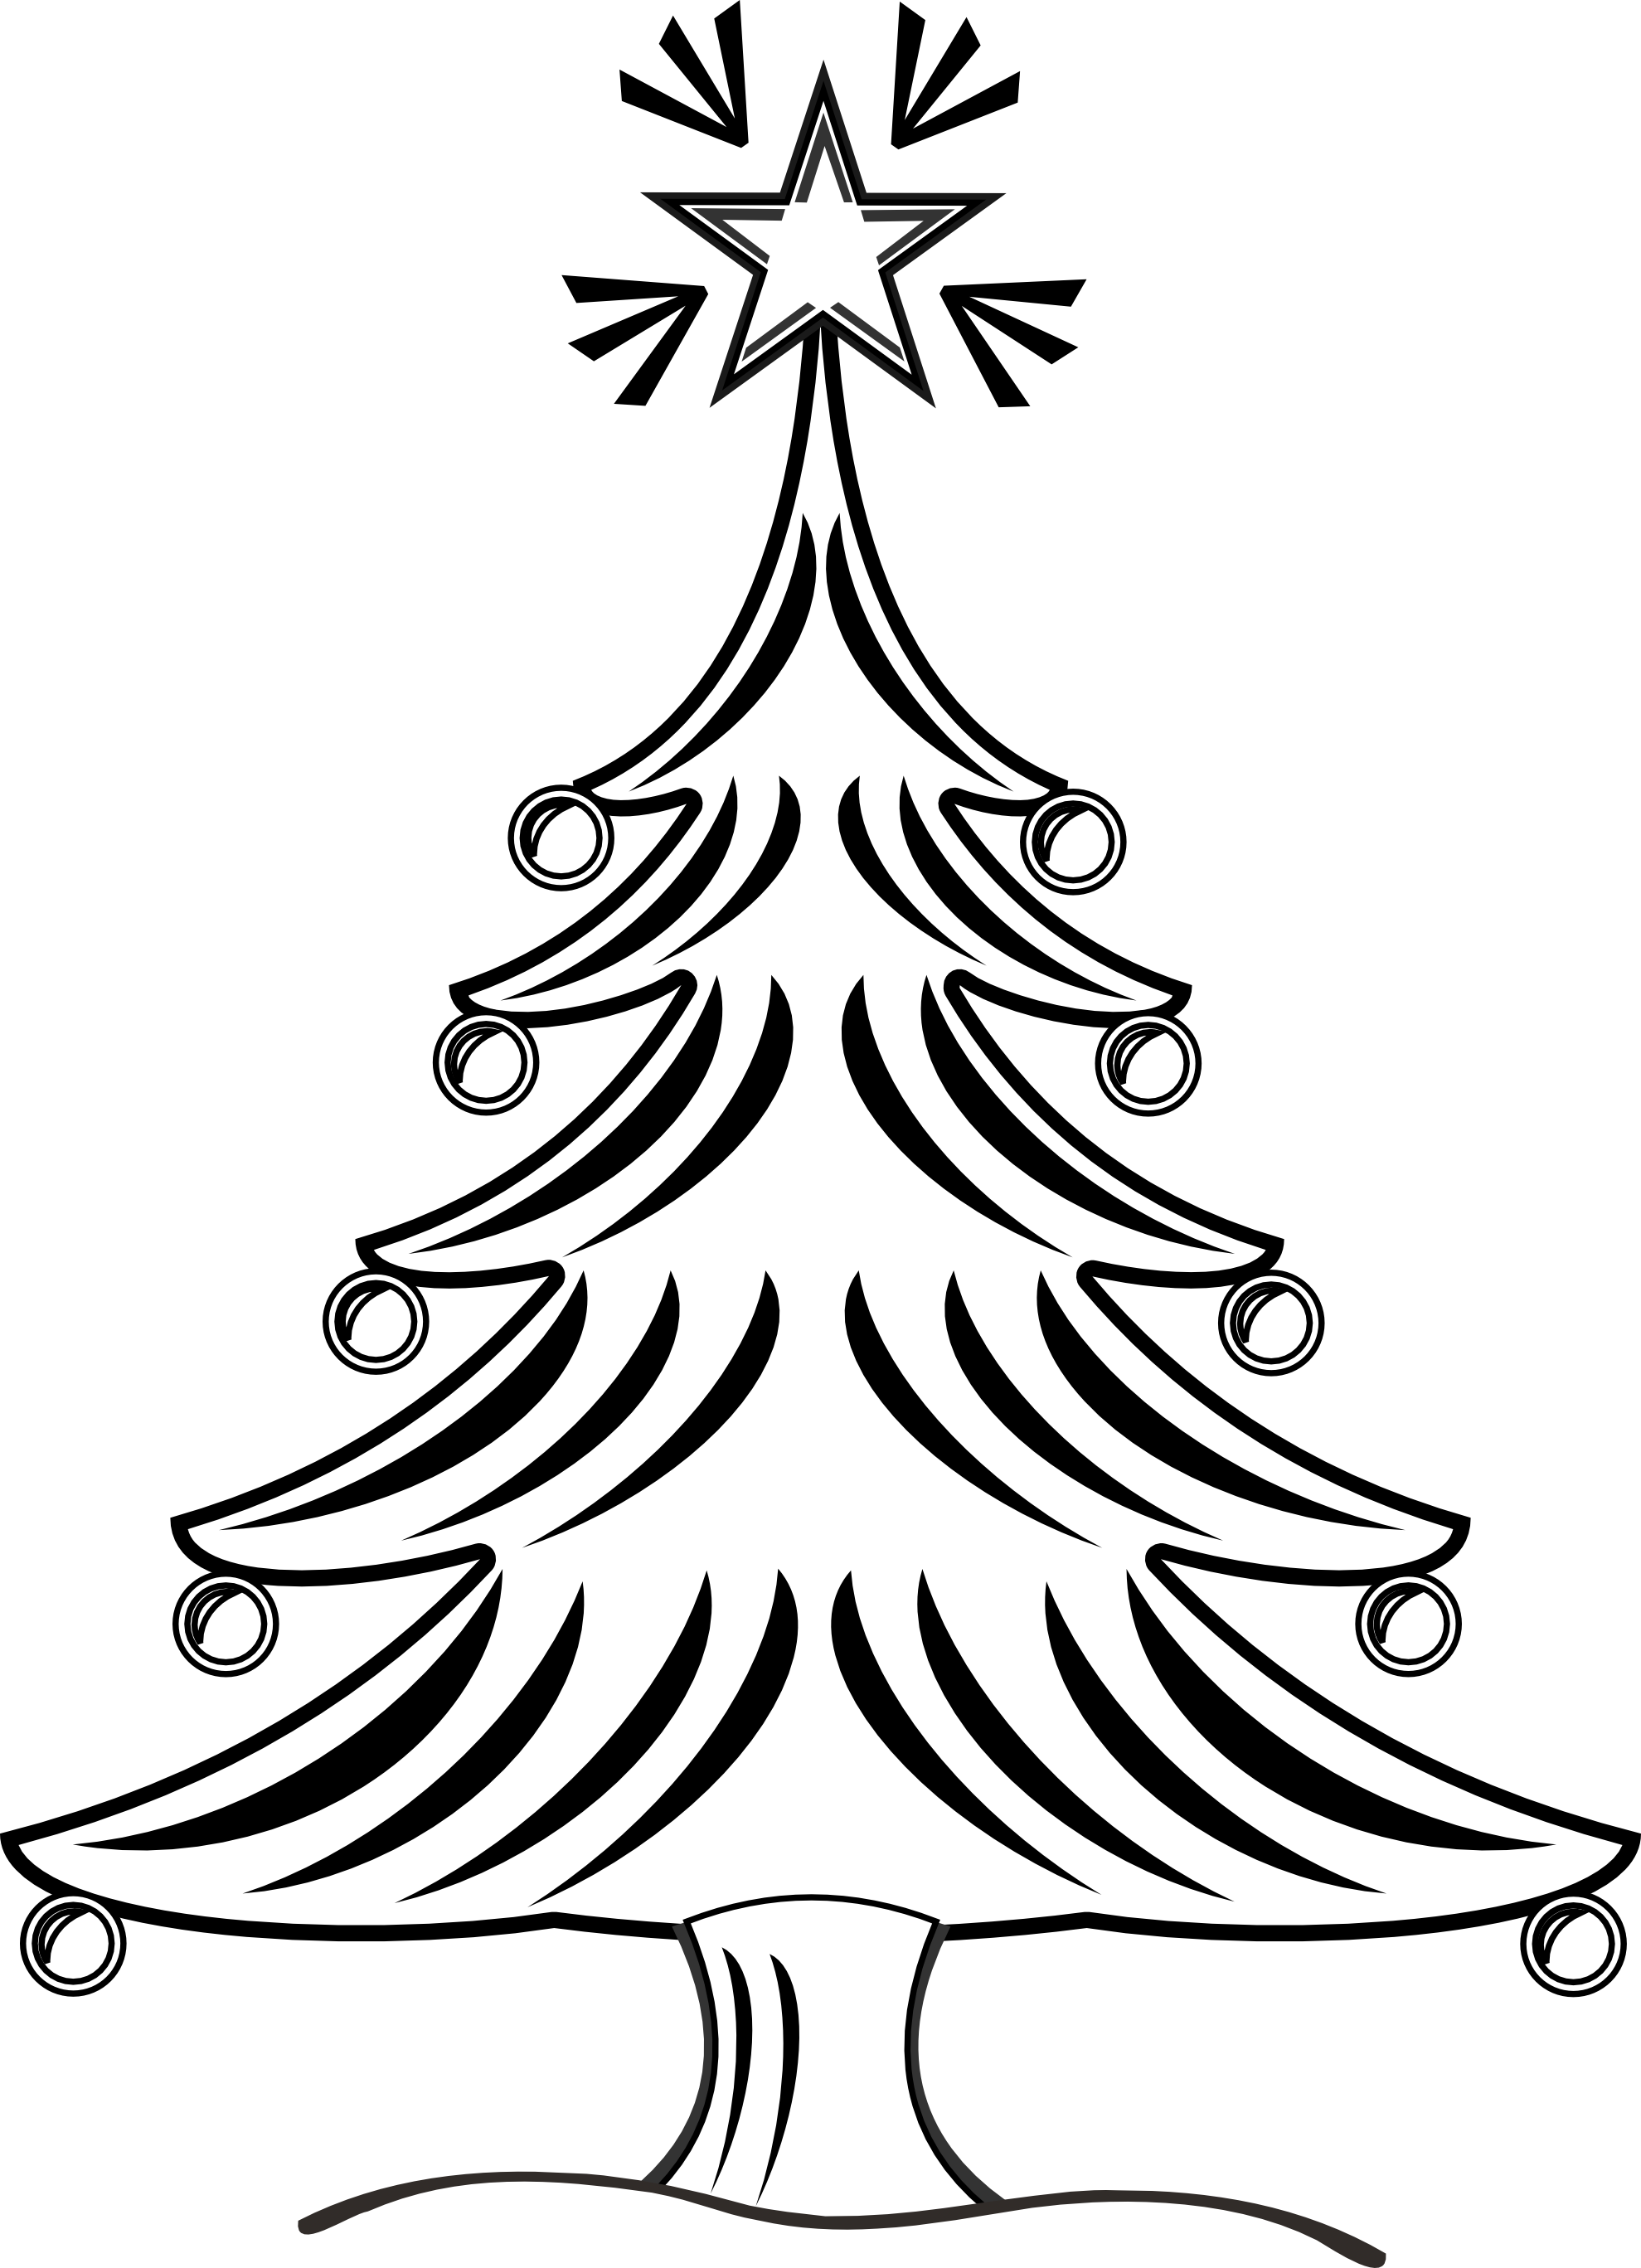 Black and white clipart christmas tree jpg transparent Christmas Tree Clipart Black And White | Clipart Panda - Free ... jpg transparent